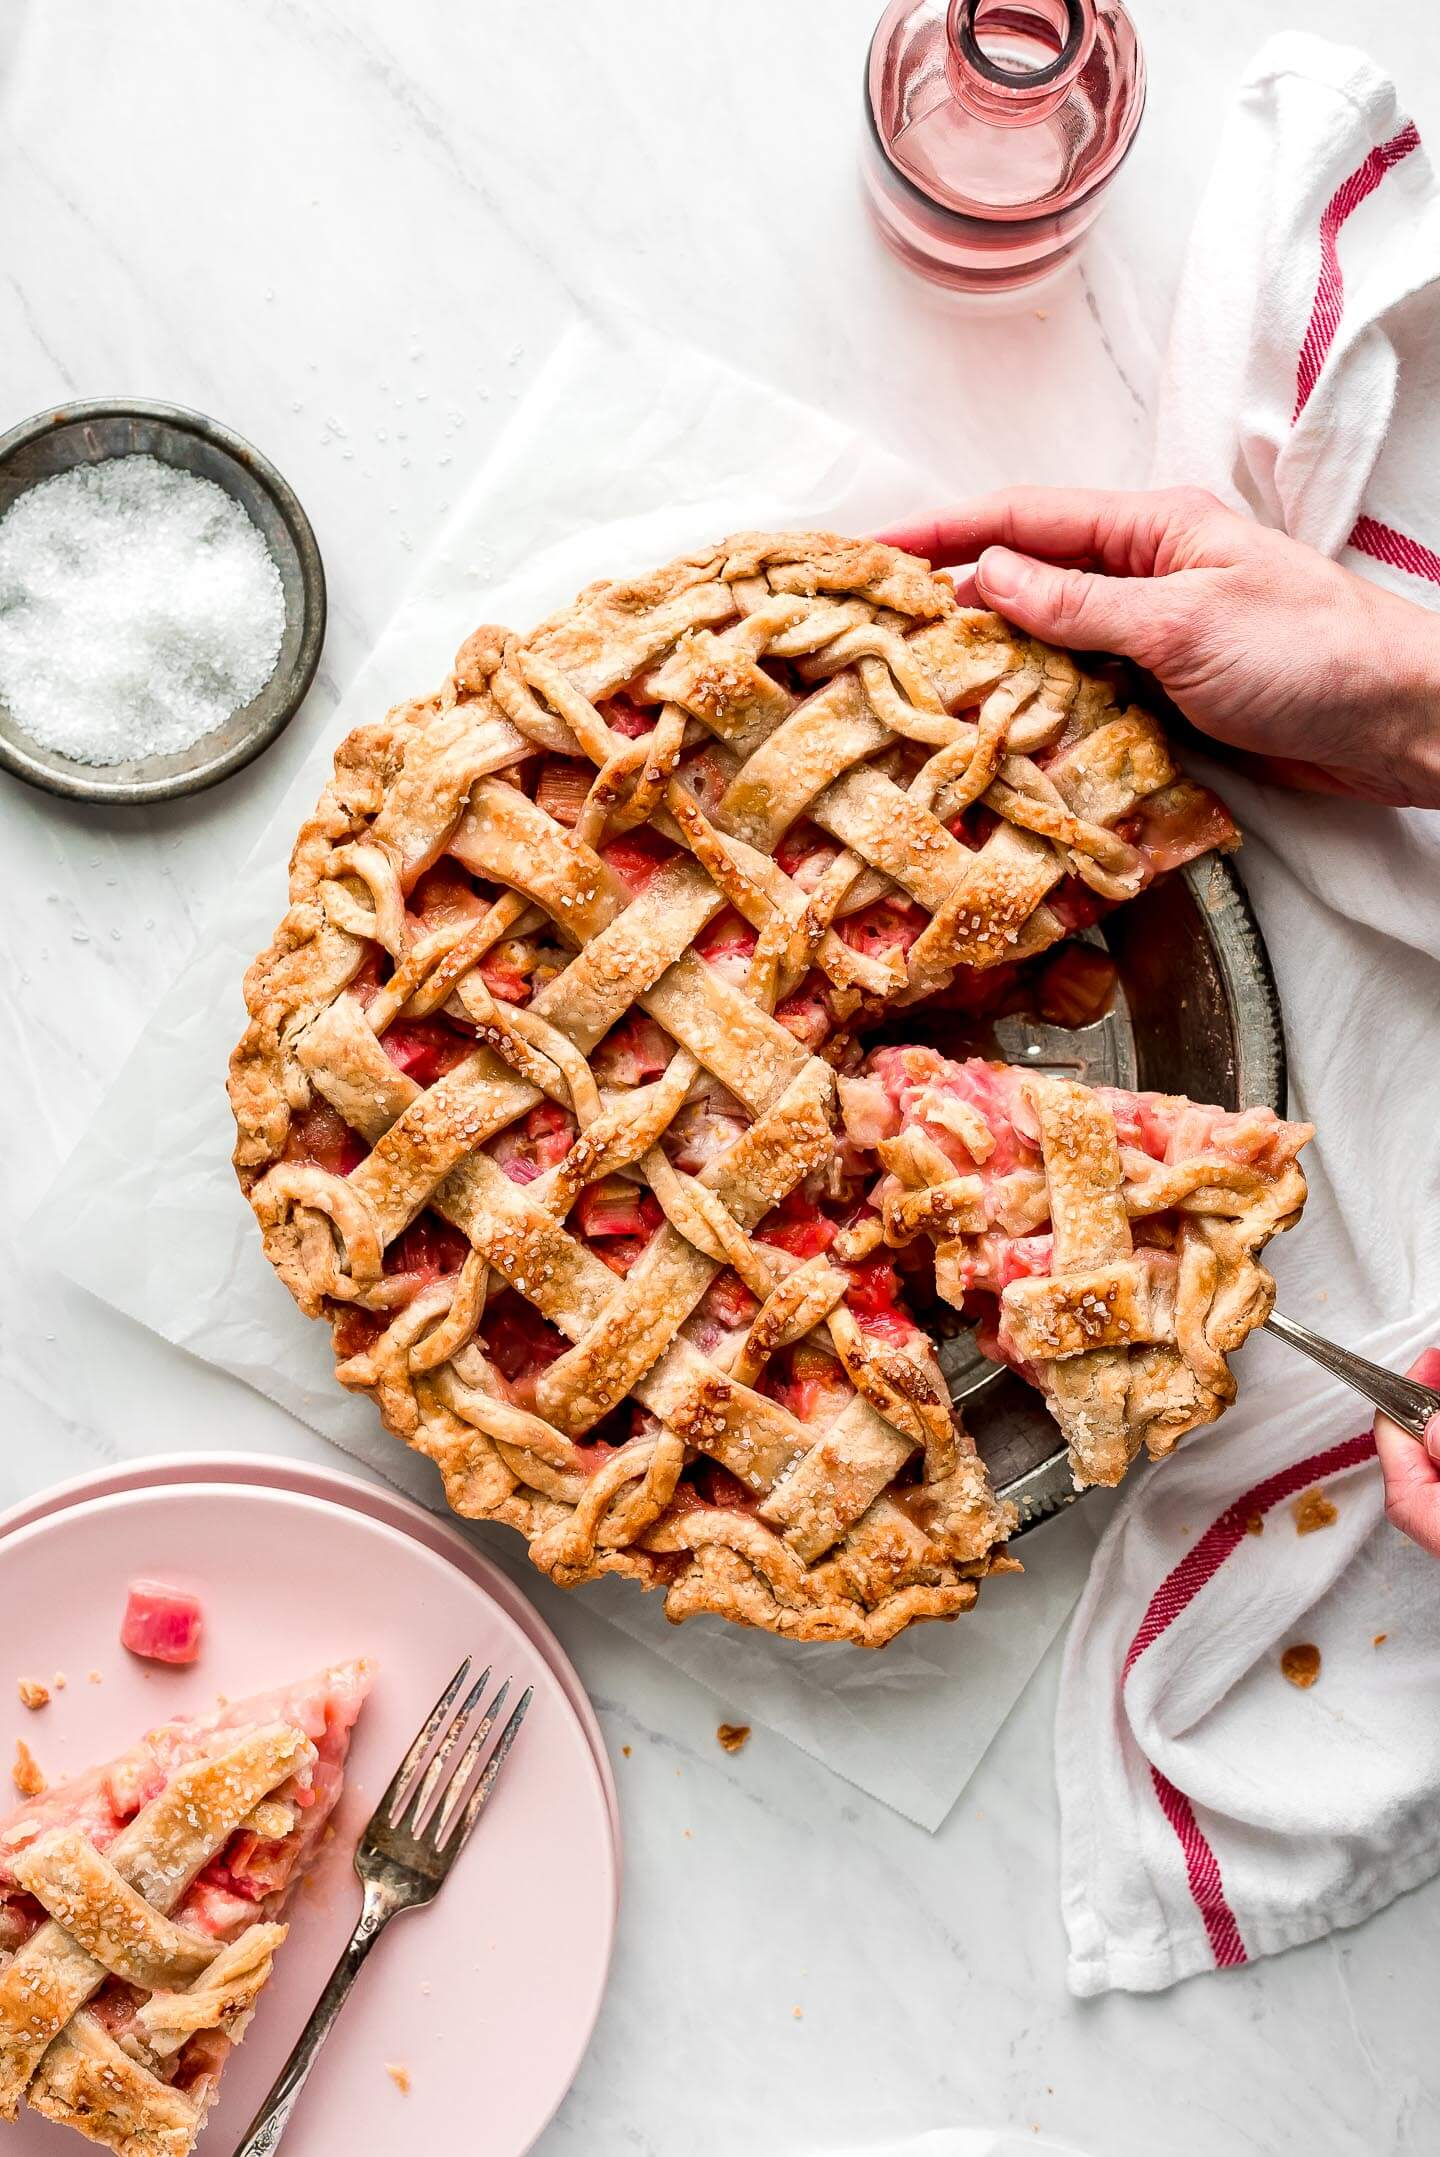 Rhubarb Pie with a lattice top with hands lifting out a slice with a pie server.